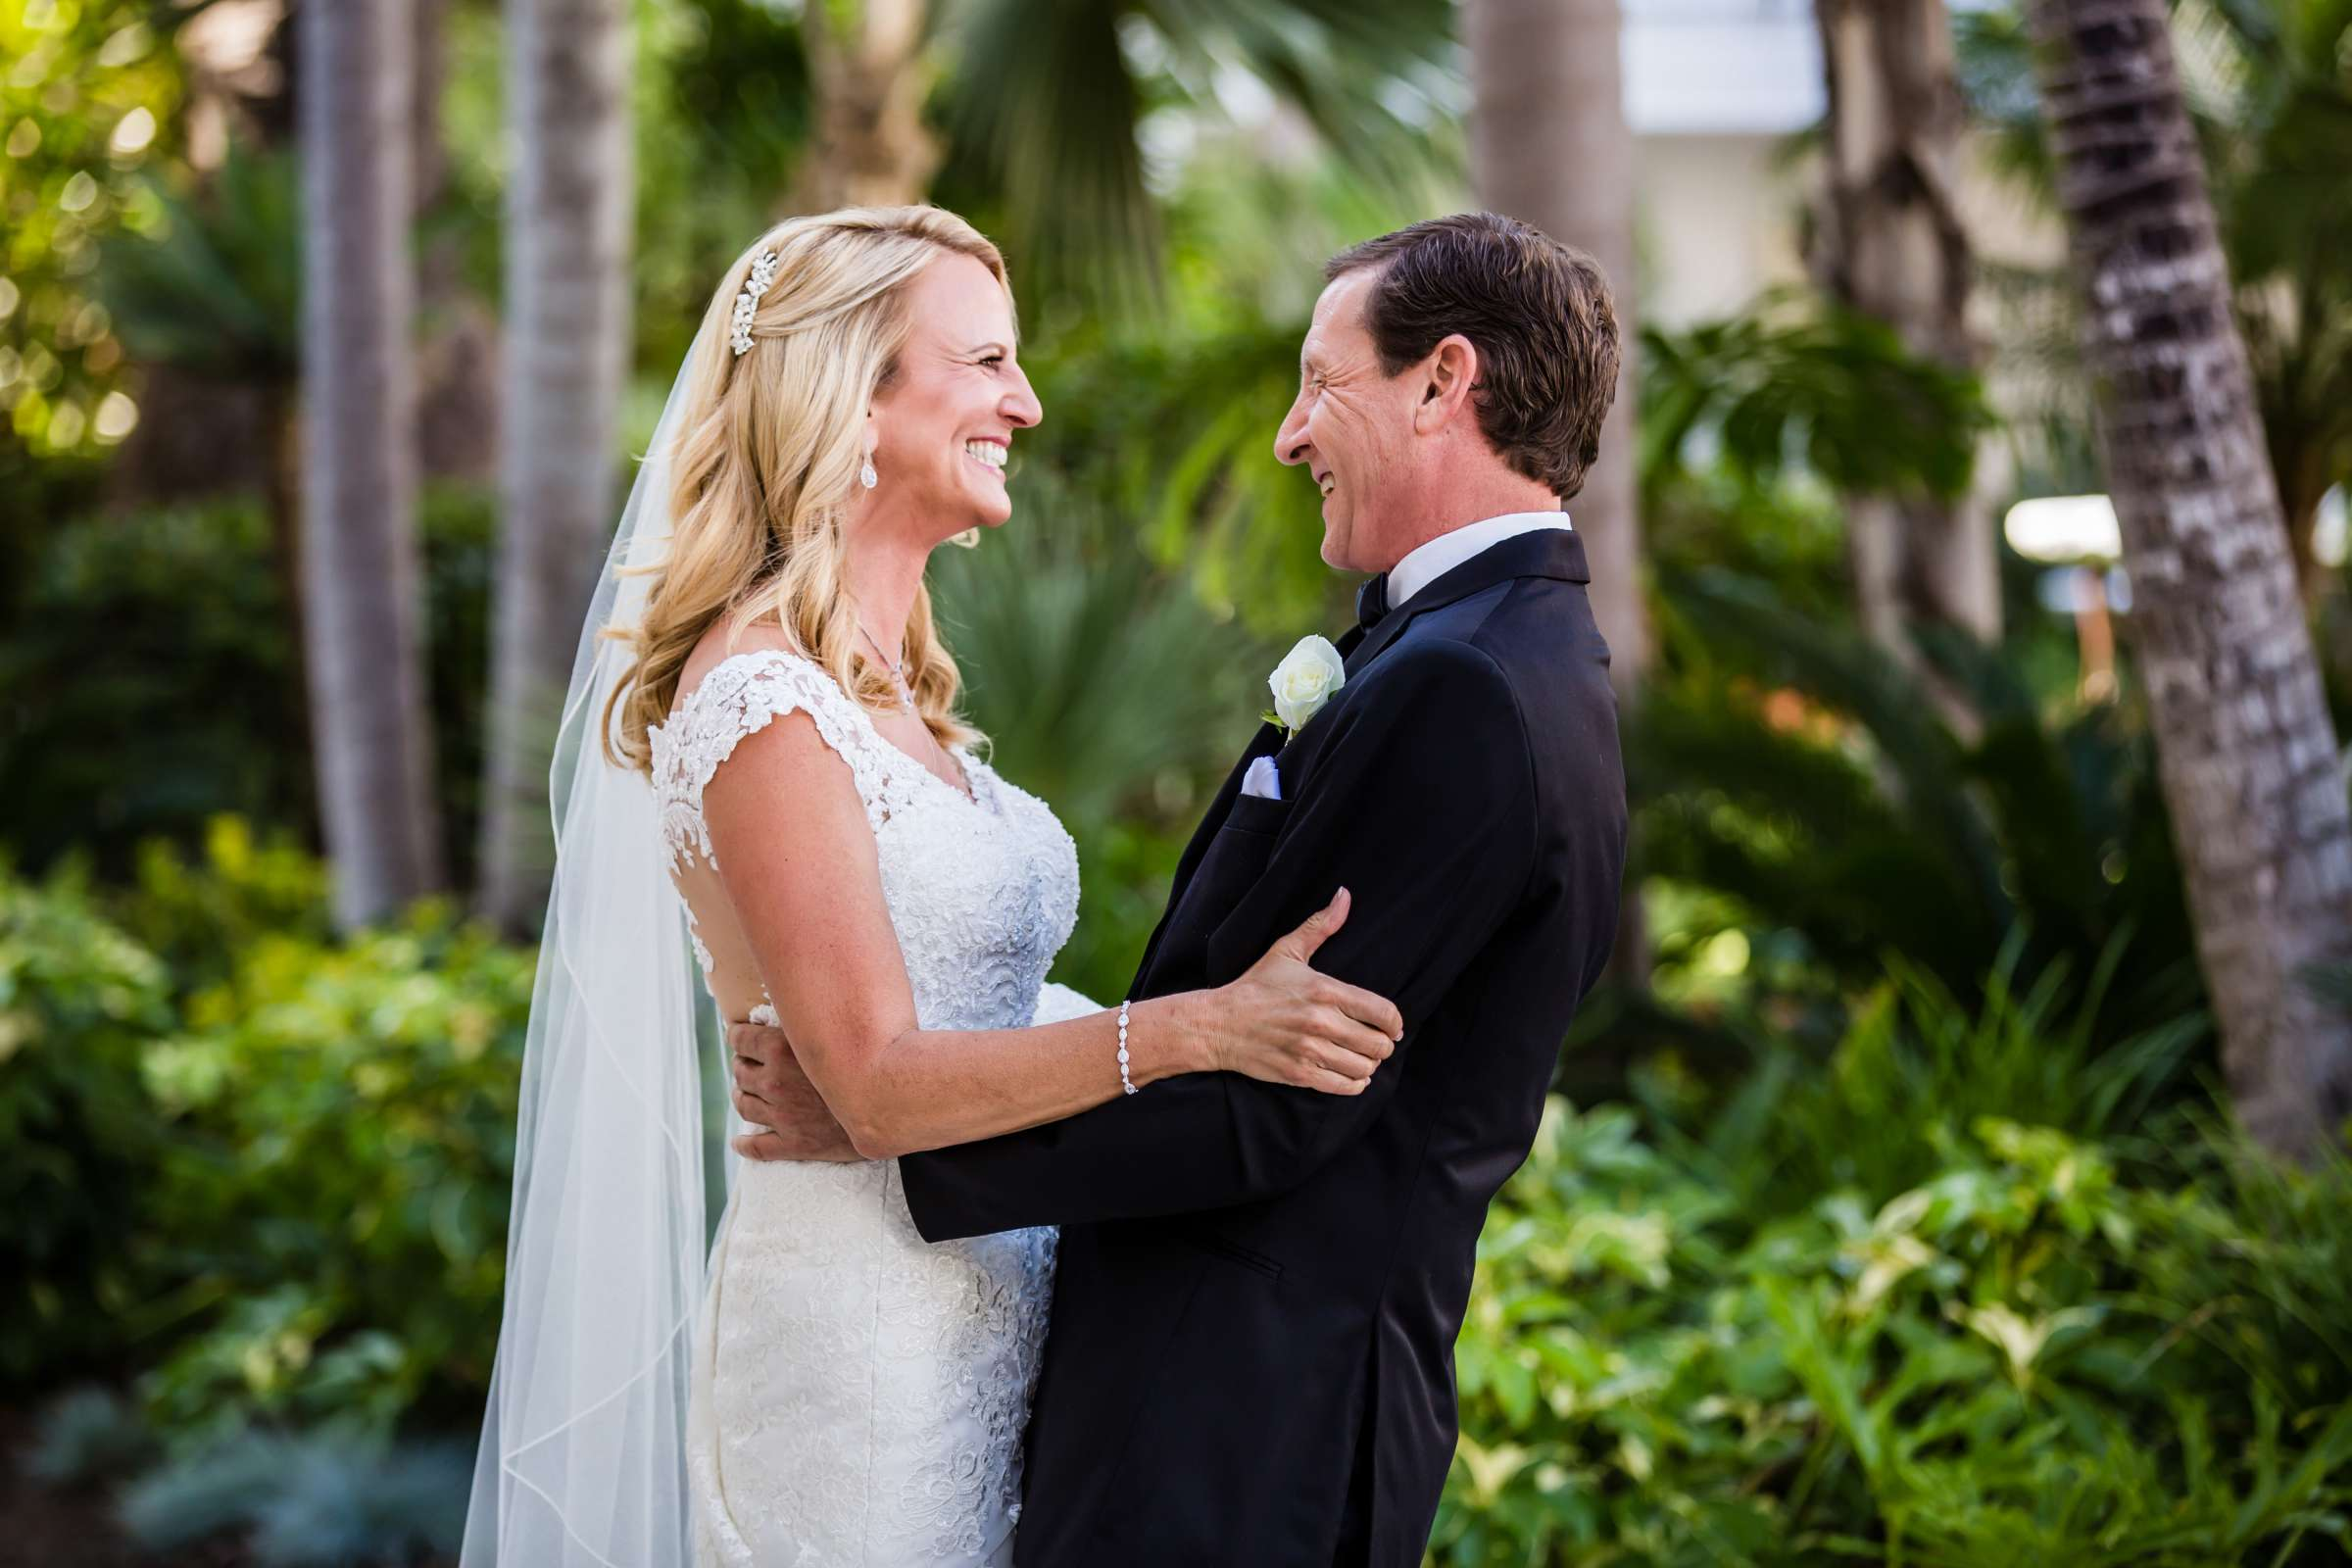 Hotel Del Coronado Wedding coordinated by Creative Affairs Inc, Diane and Paul Wedding Photo #49 by True Photography